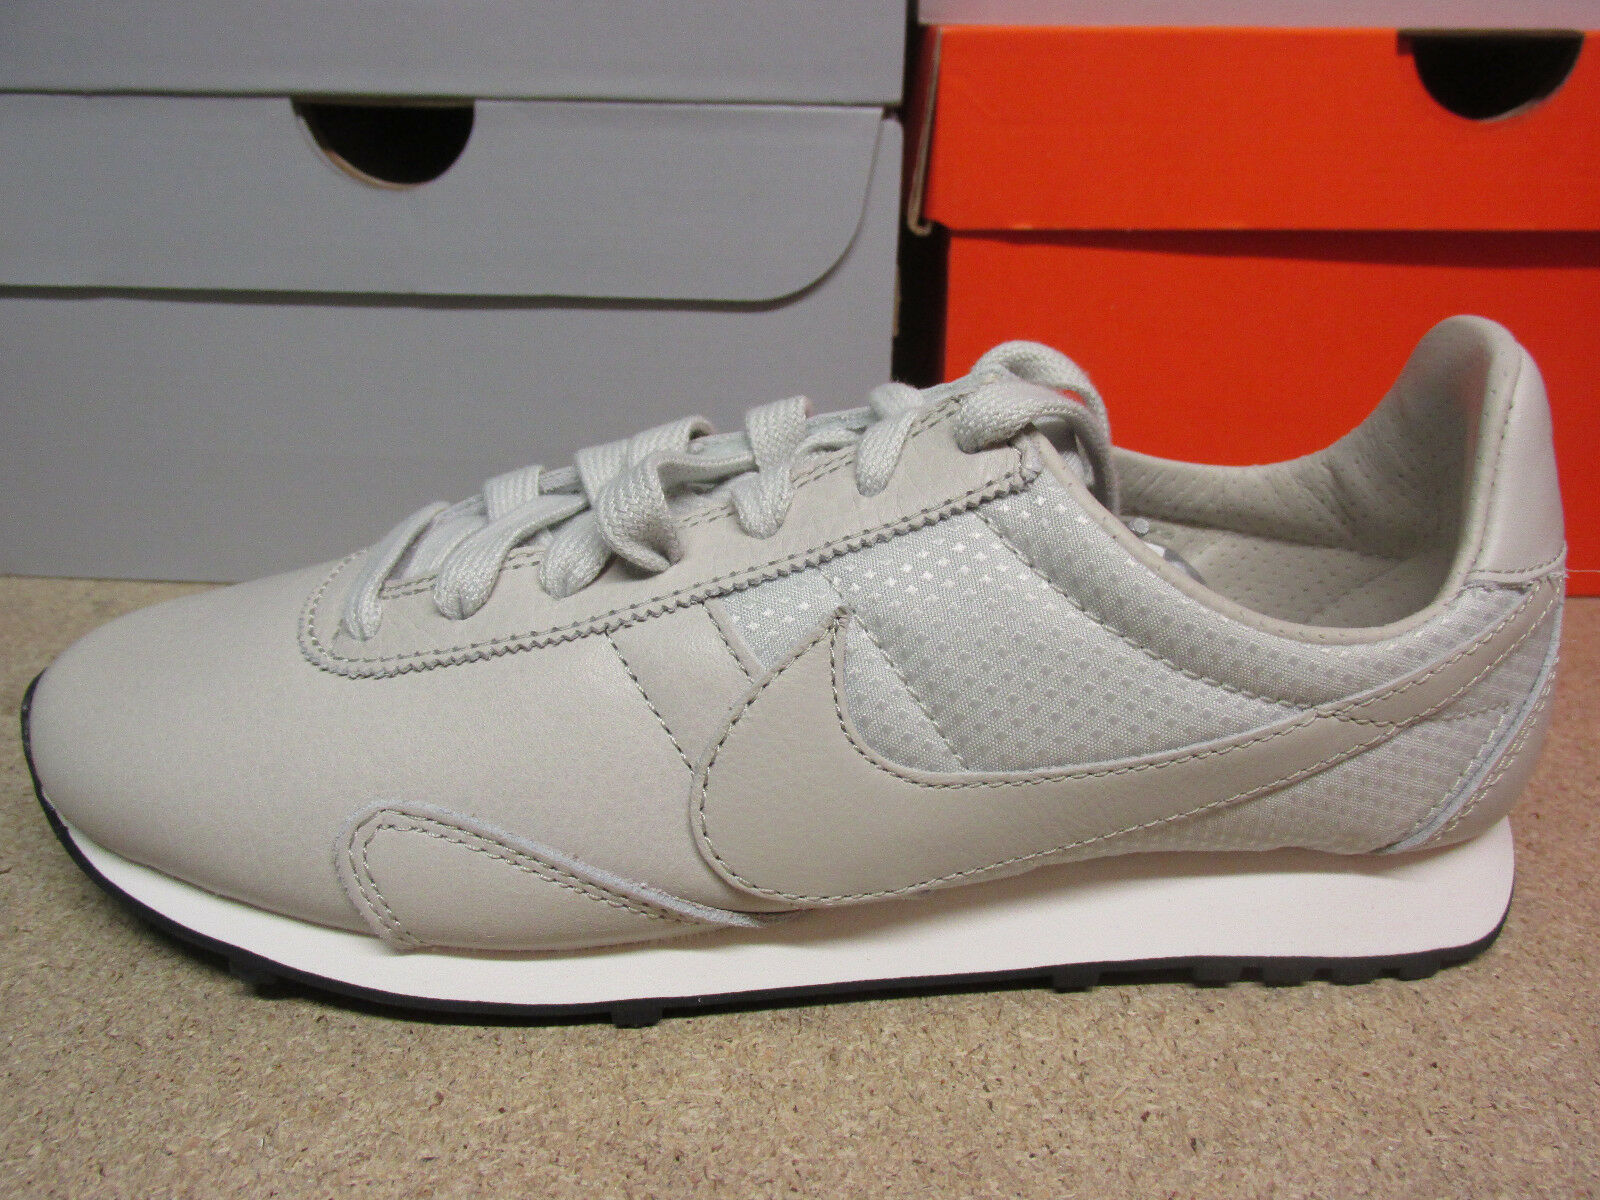 Nike - Damenss pre - Nike montreal 839605 001 turnschuhe trainers racer pinnacle läuft 0545aa